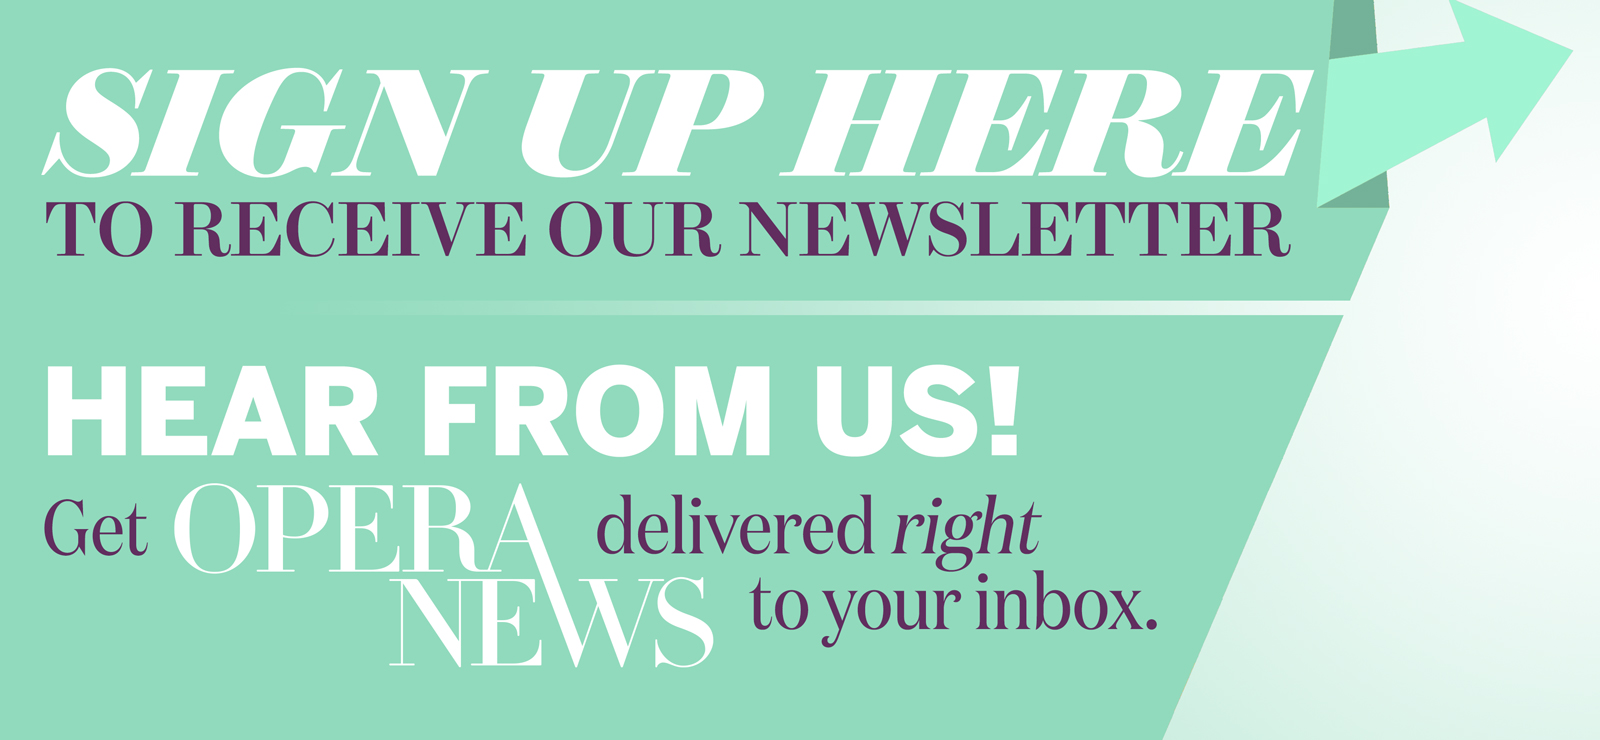 Newsletter Sign up 416`